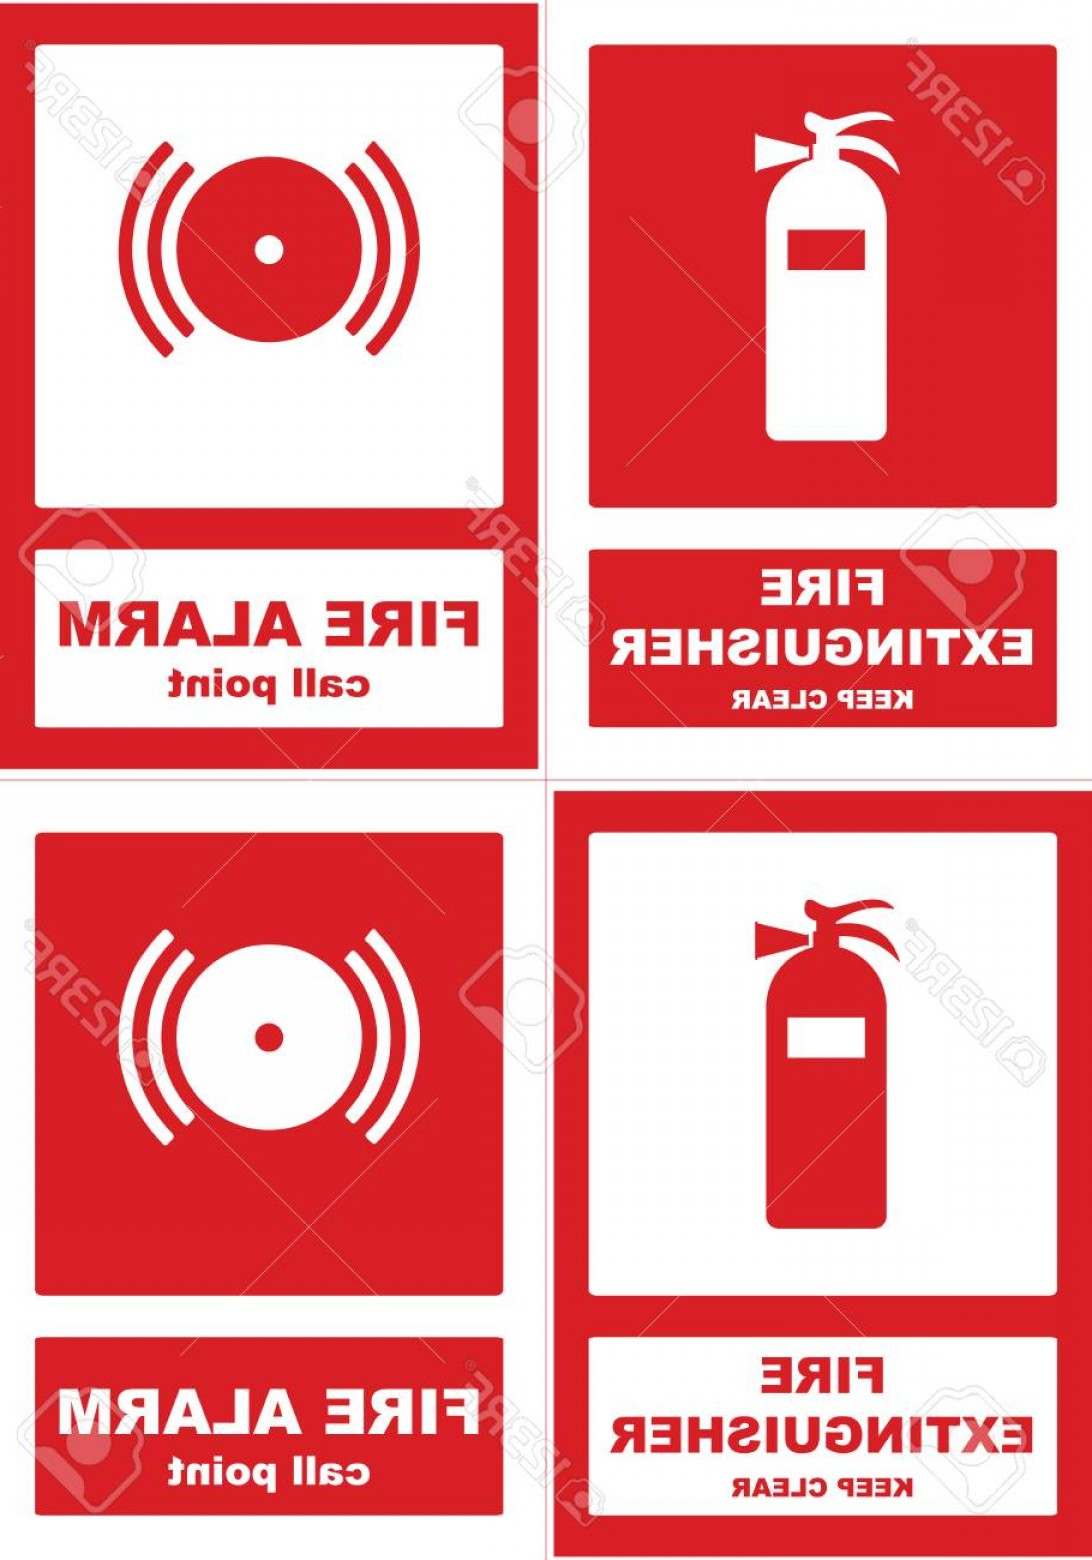 Fire Alarm Vector: Photostock Vector Fire Extenguisher And Fire Alarm Call Point Vector Stiker